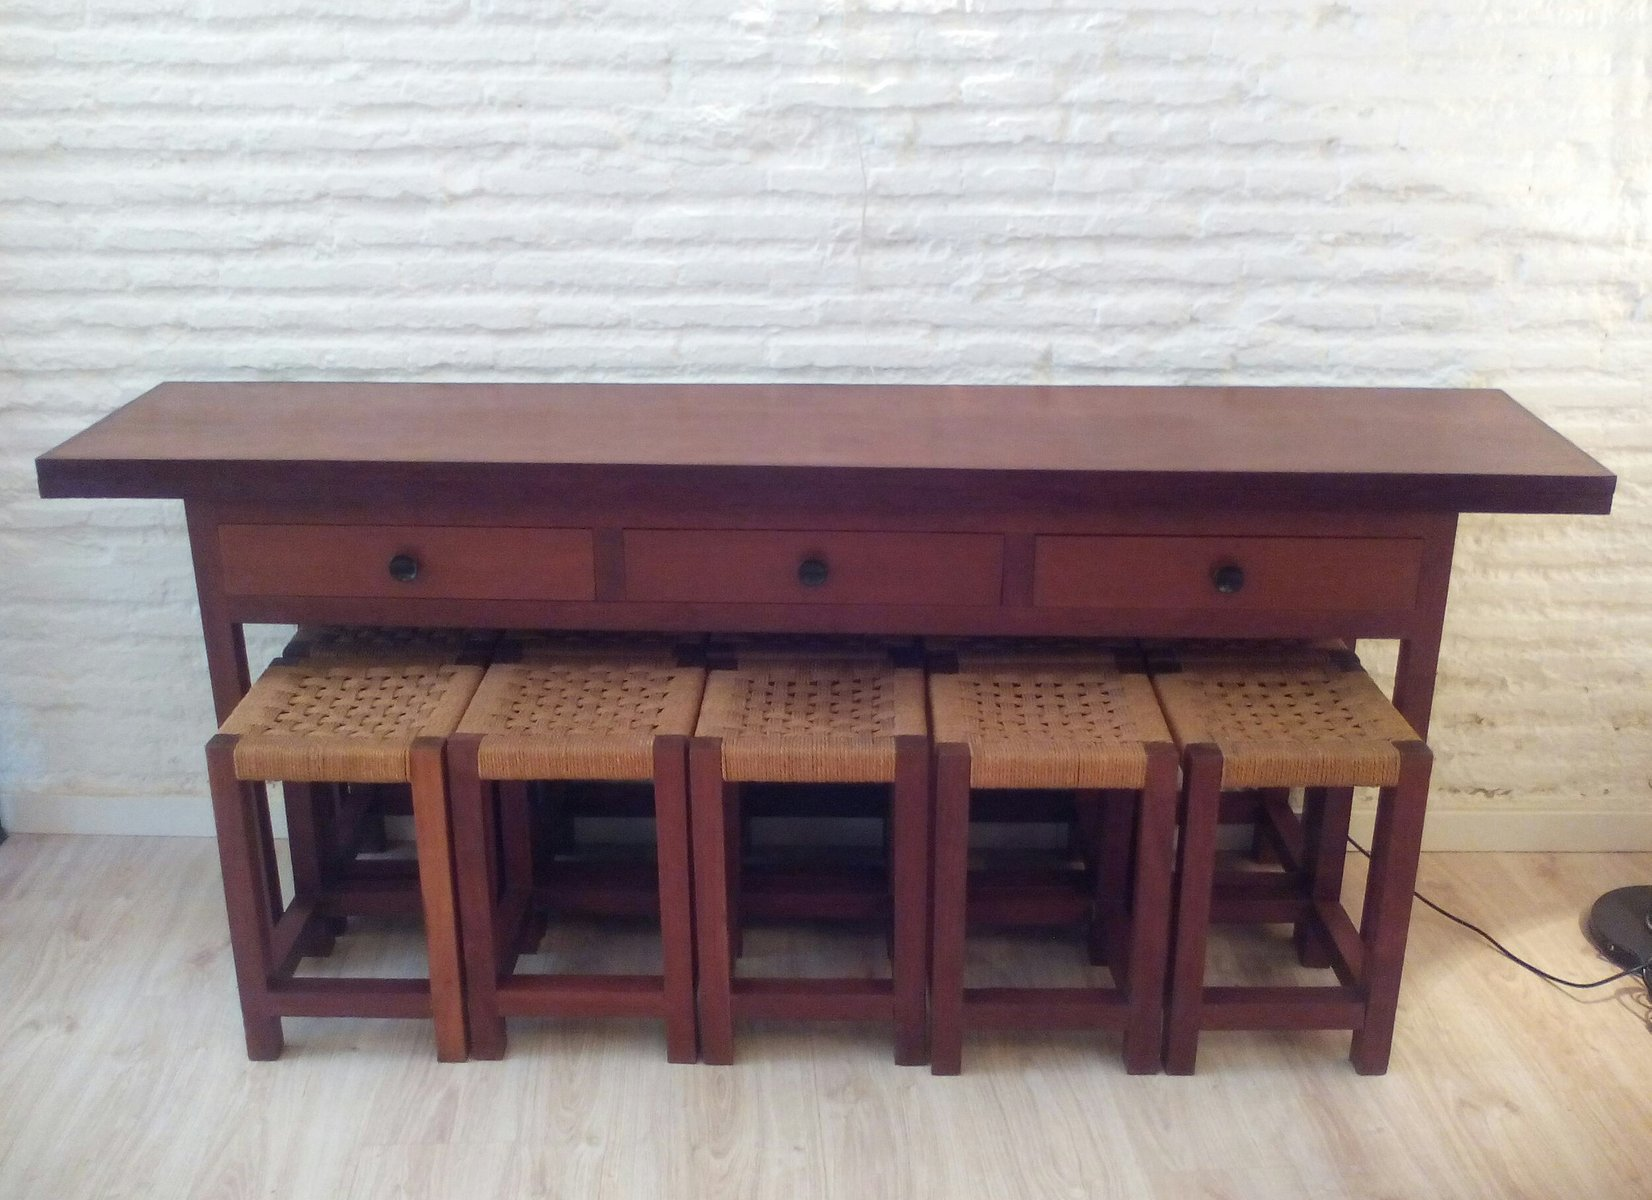 Folding Table Or Console U0026 10 IPE Wooden Stools, 1950s